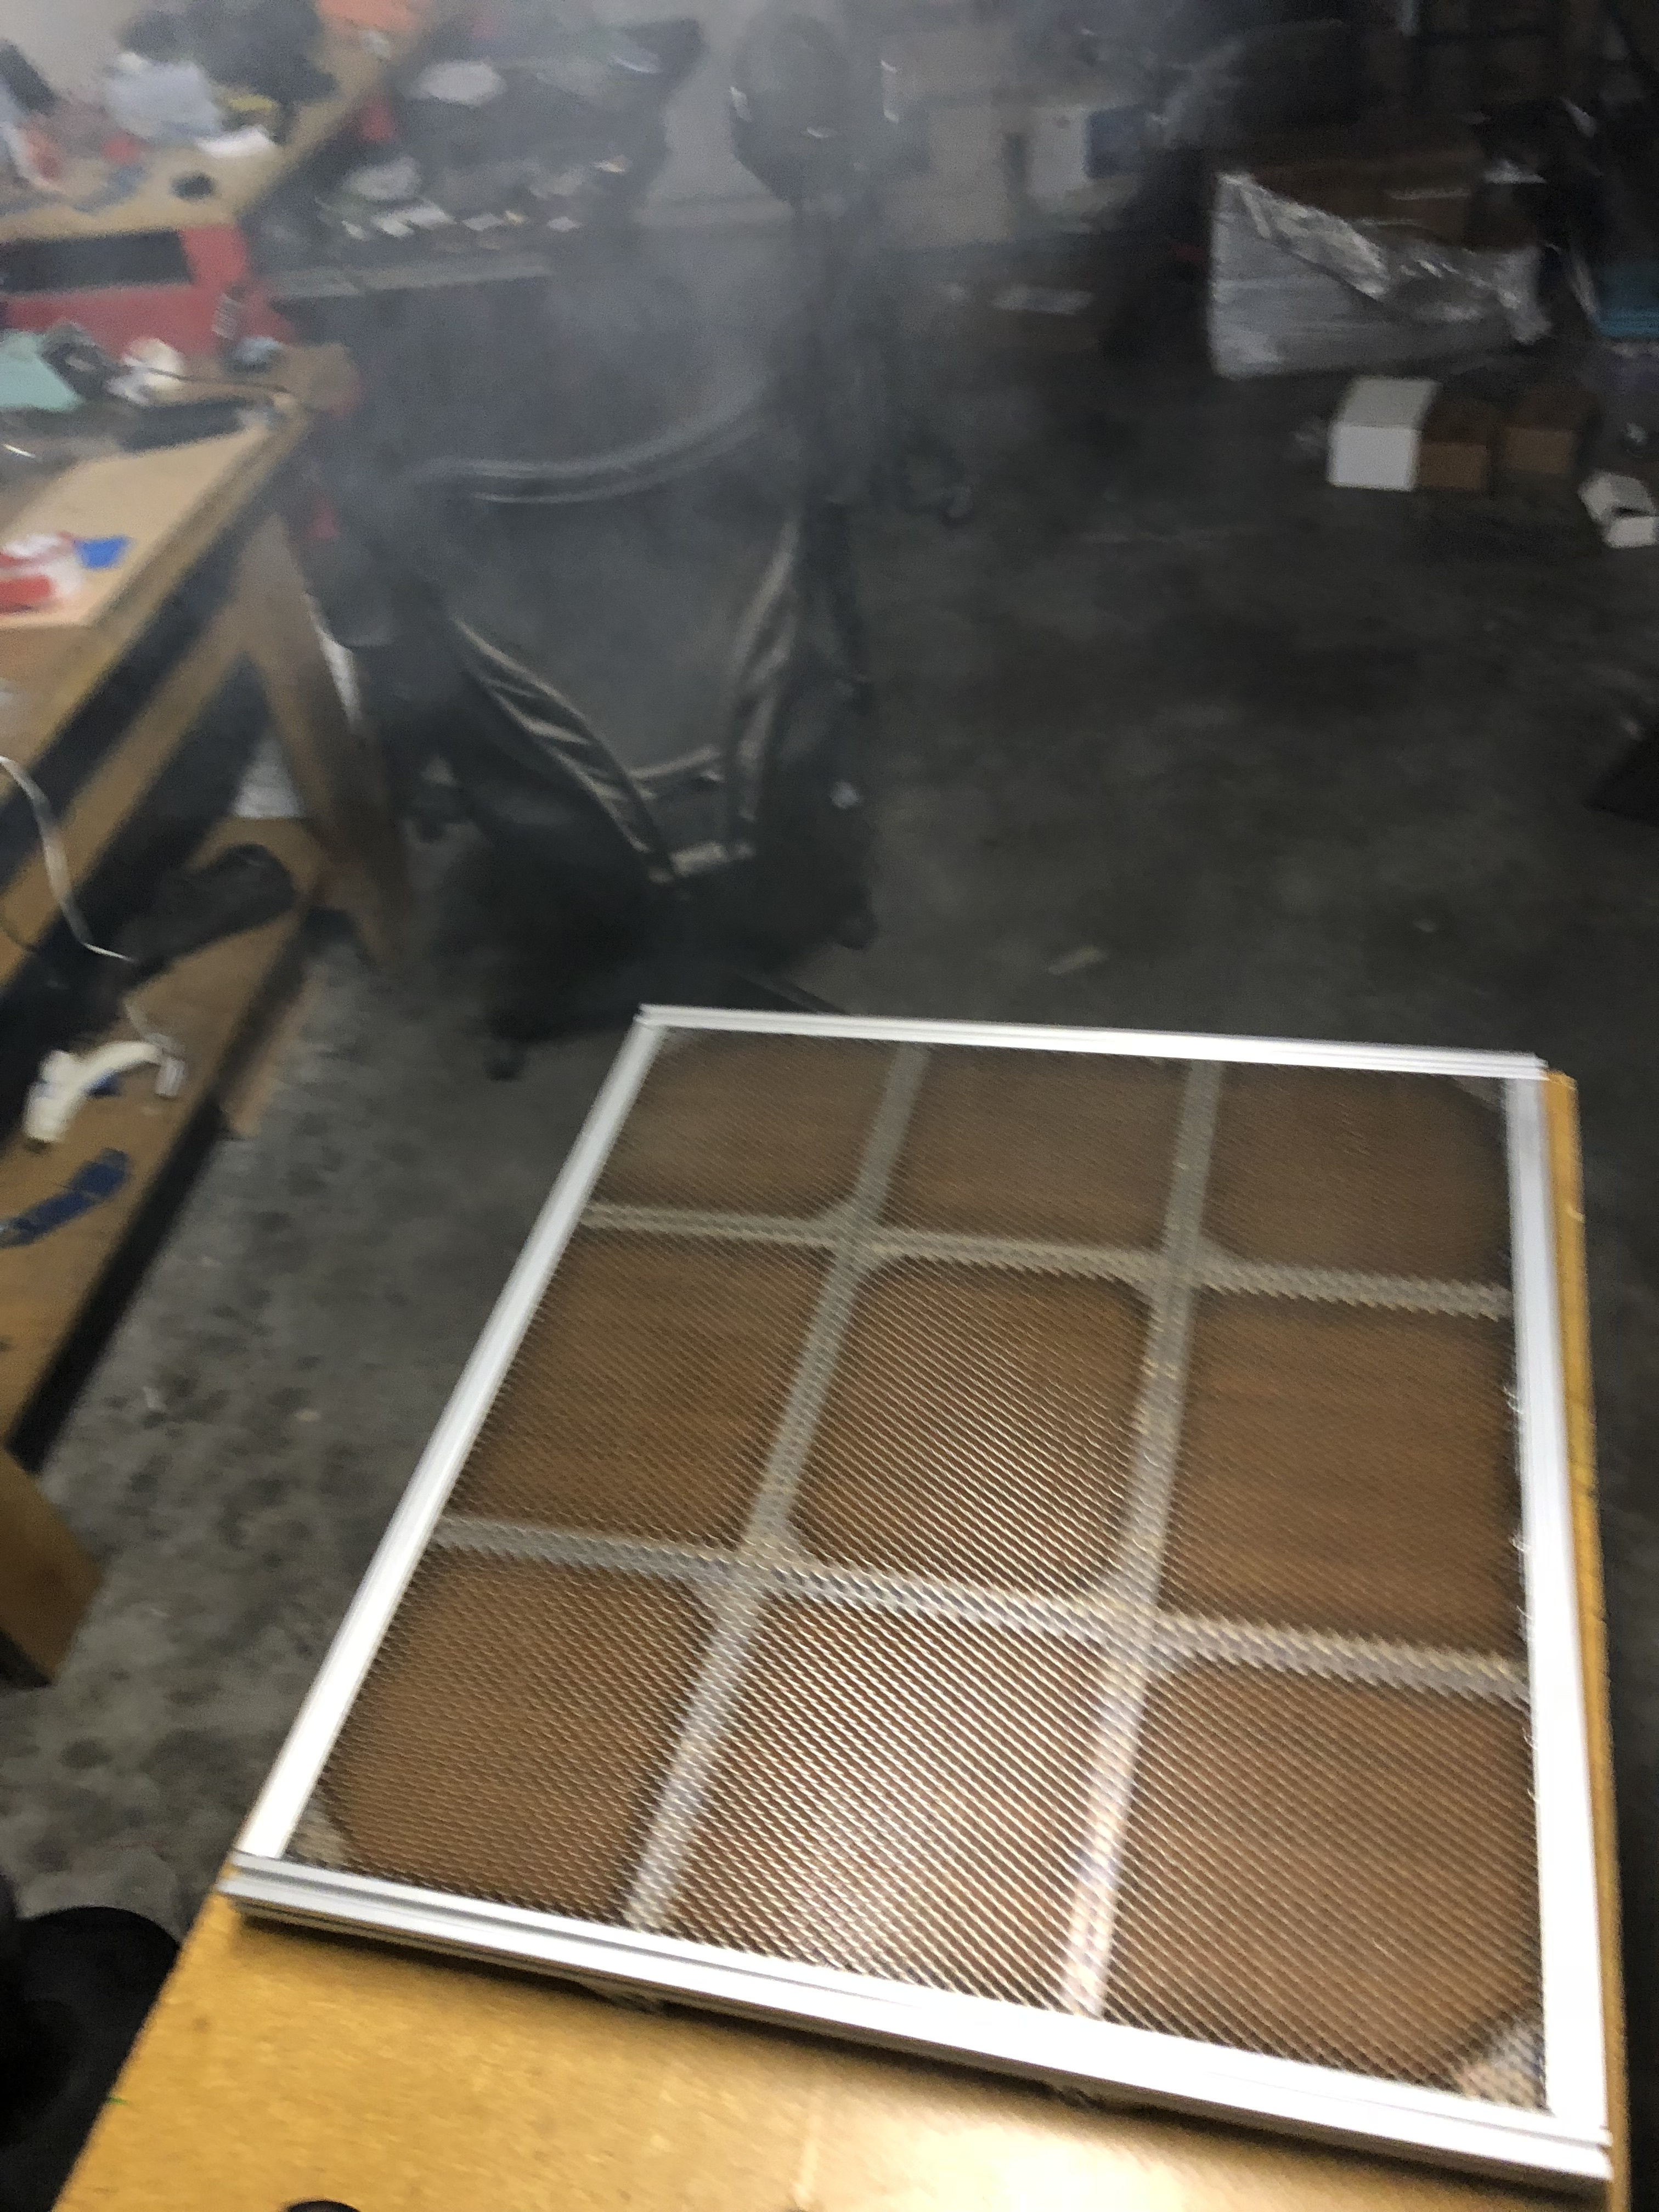 Custom Build 80W CO2 Laser Cutter - Finished creations